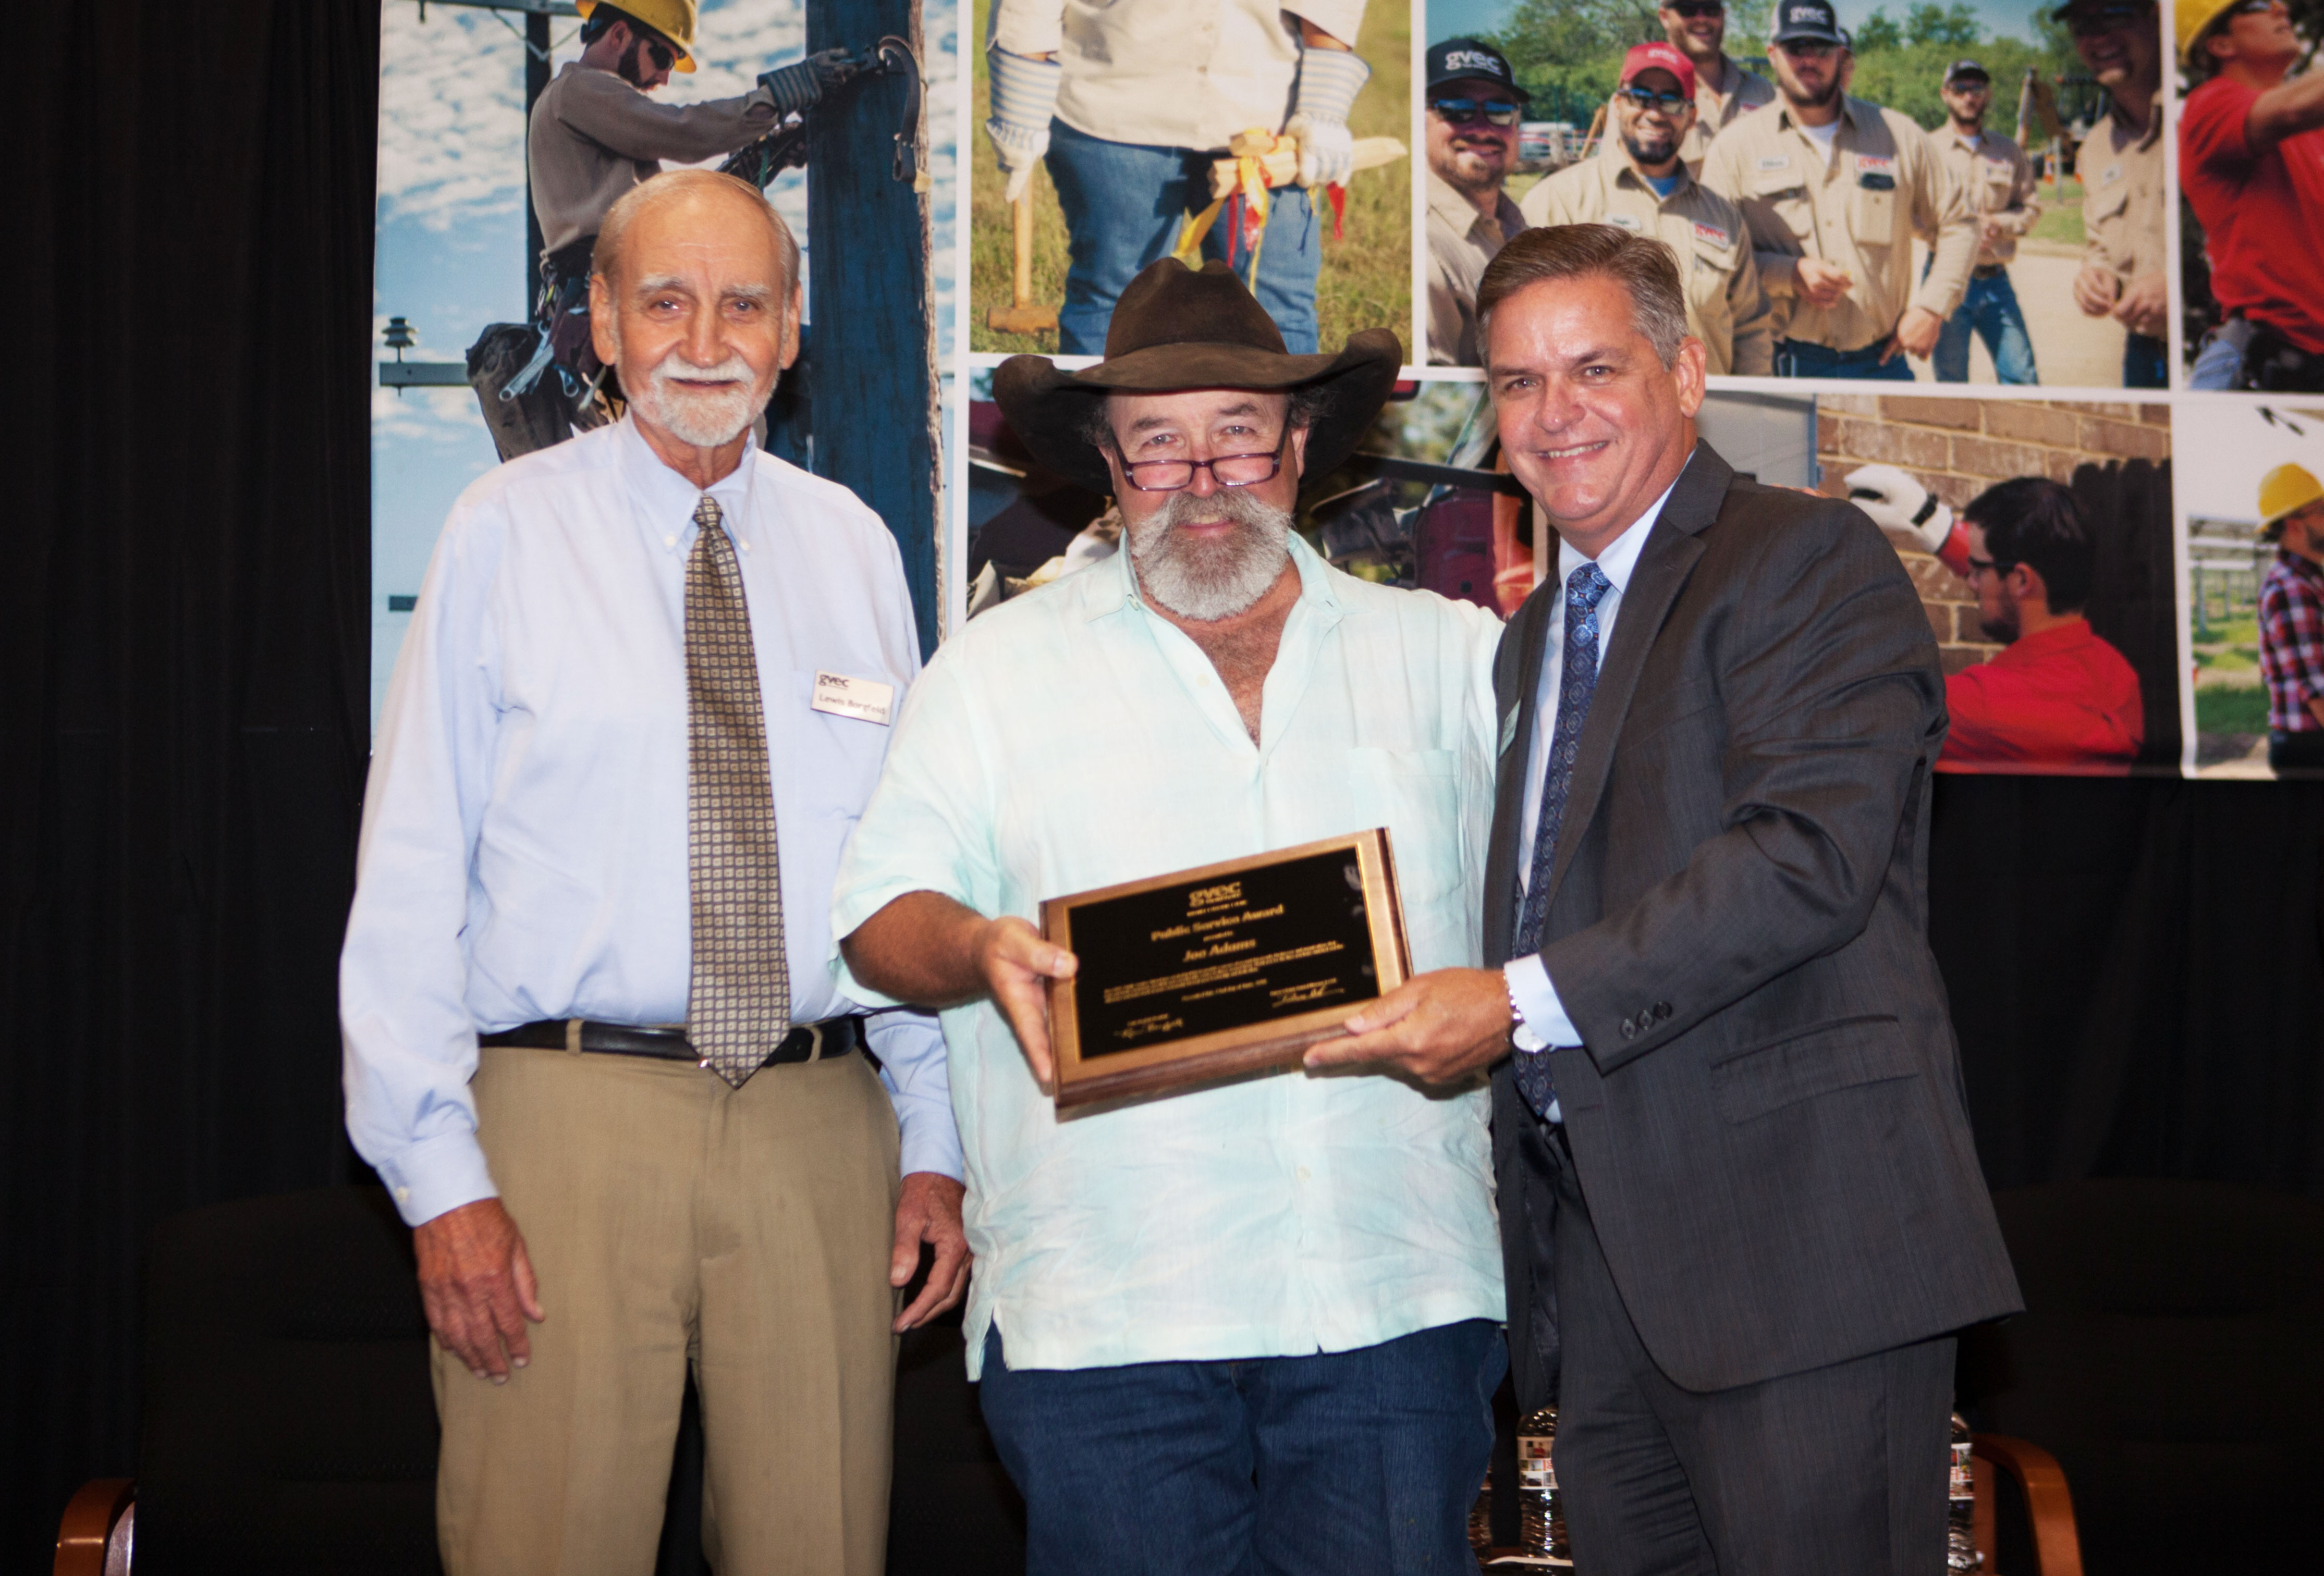 Joe Adams is presented with GVEC's Public Service Award for 2018